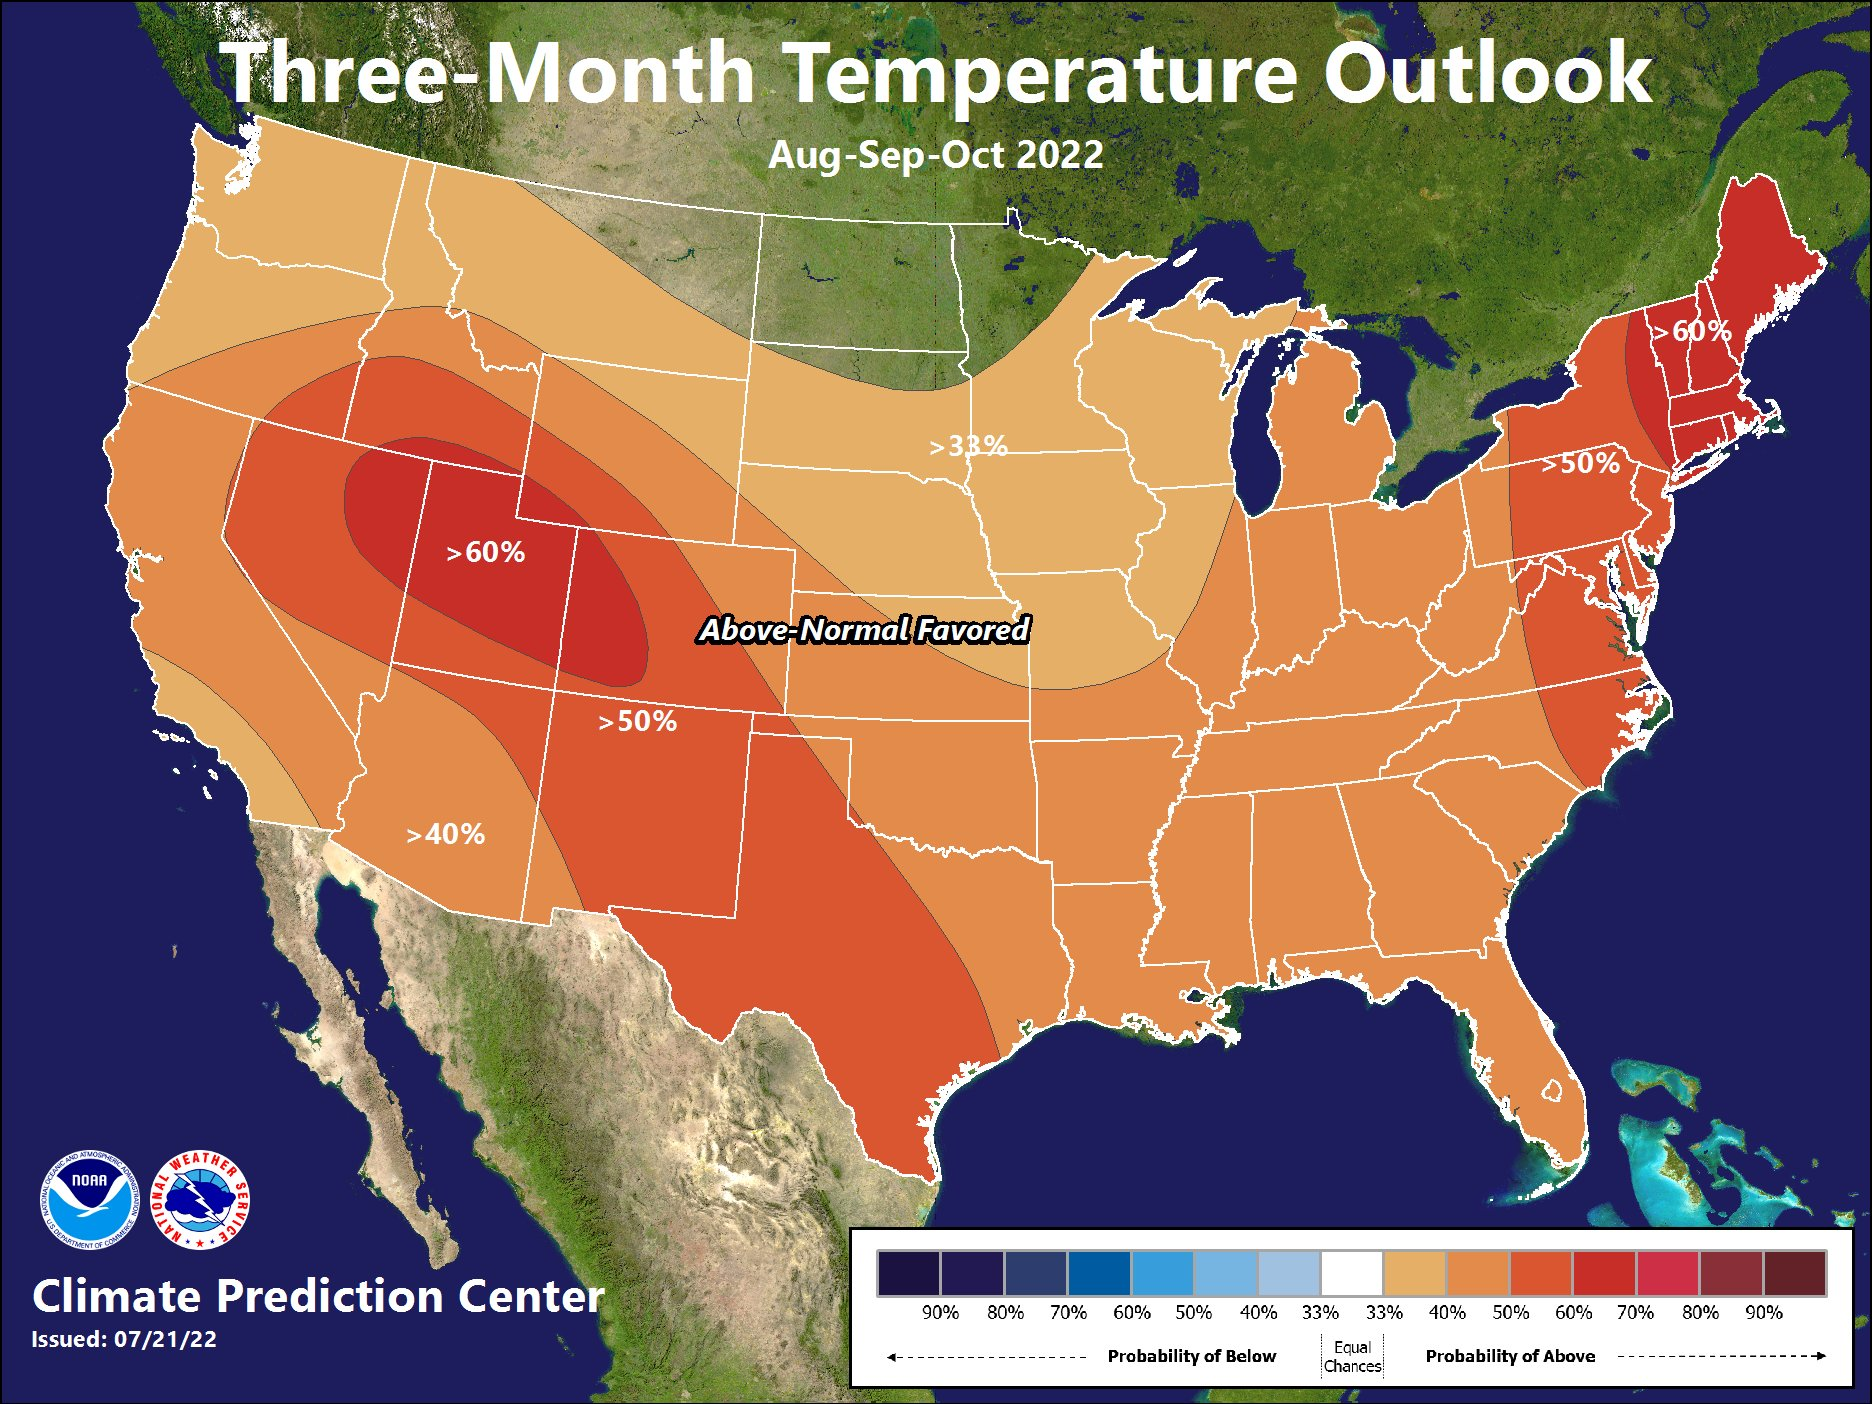 3 Month Temperature Outlook